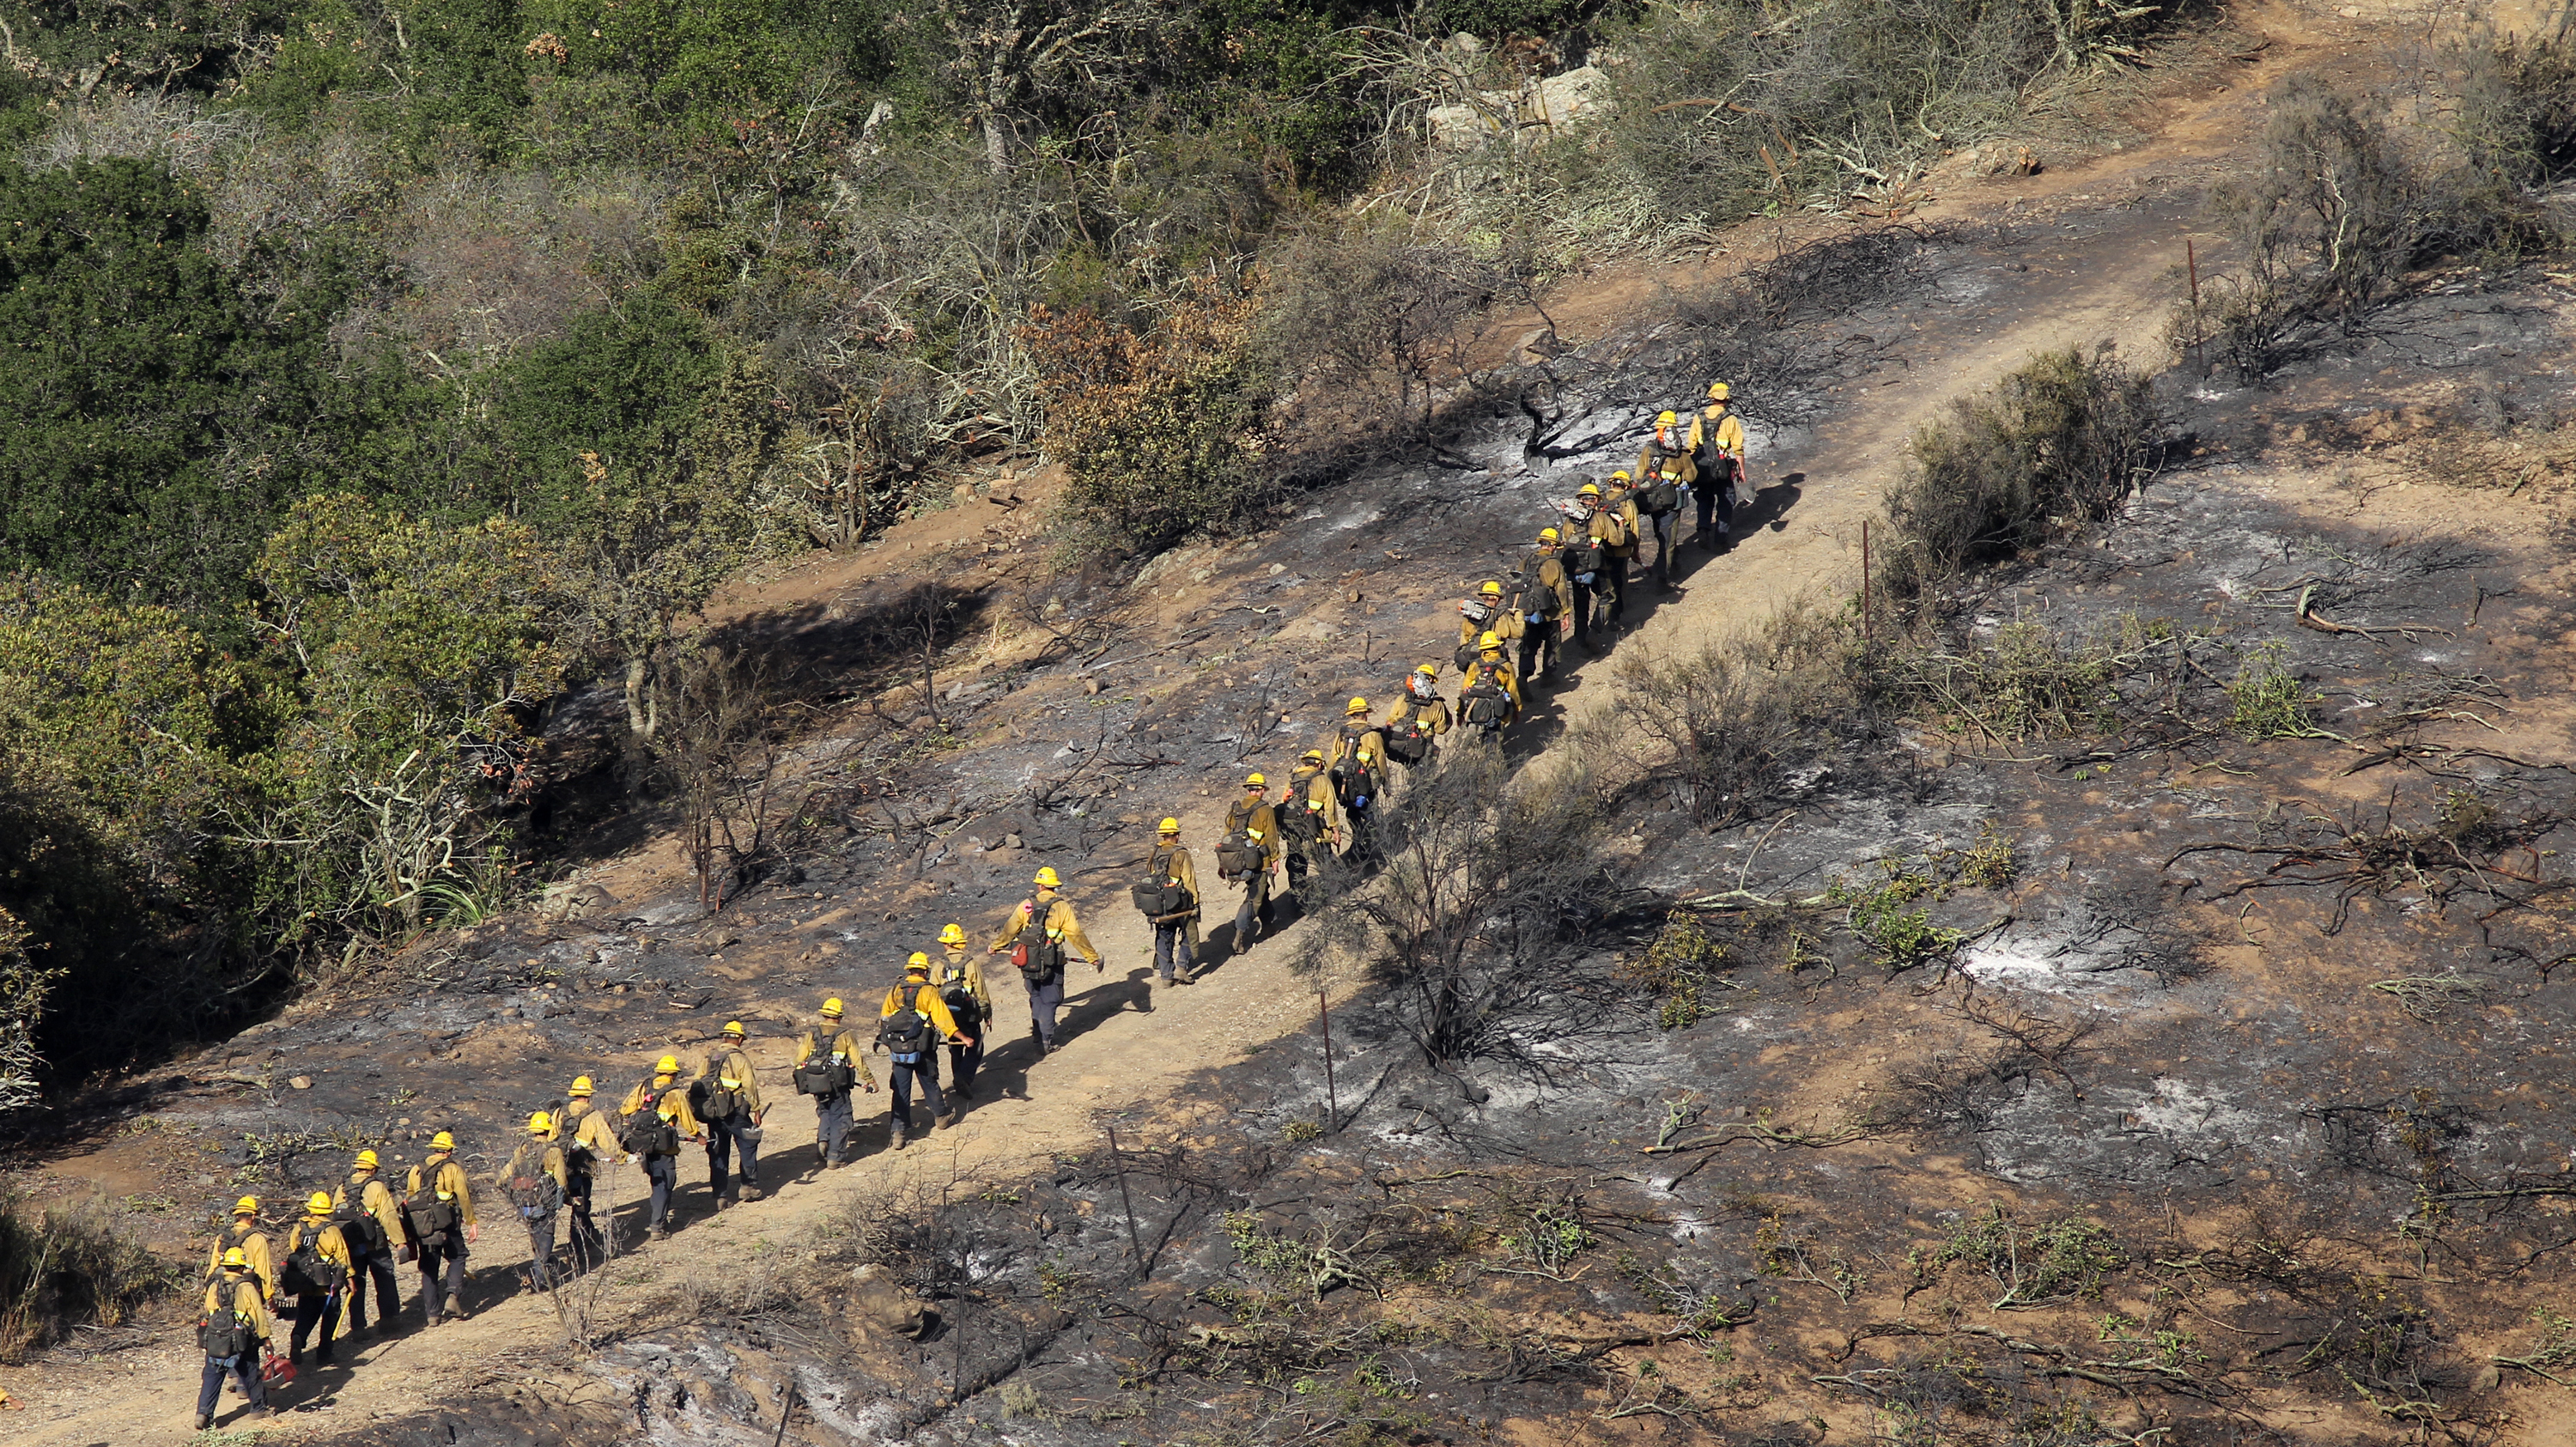 Springs Fire May Be Fully Contained Monday, Officials Say